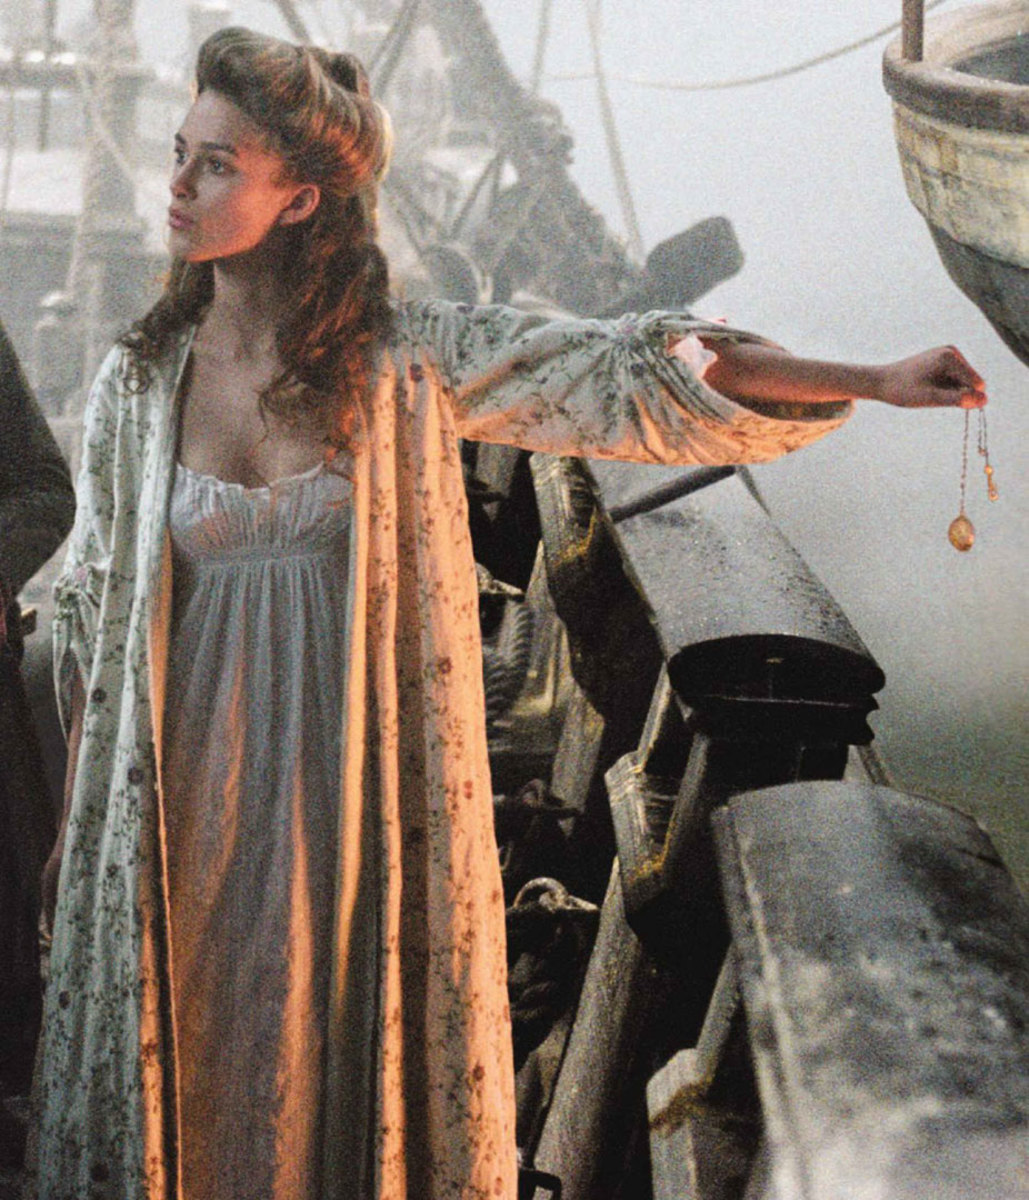 Keira Knightley as Elizabeth Swann  The Pirates of the Caribbean: The Curse of the Black Pearl